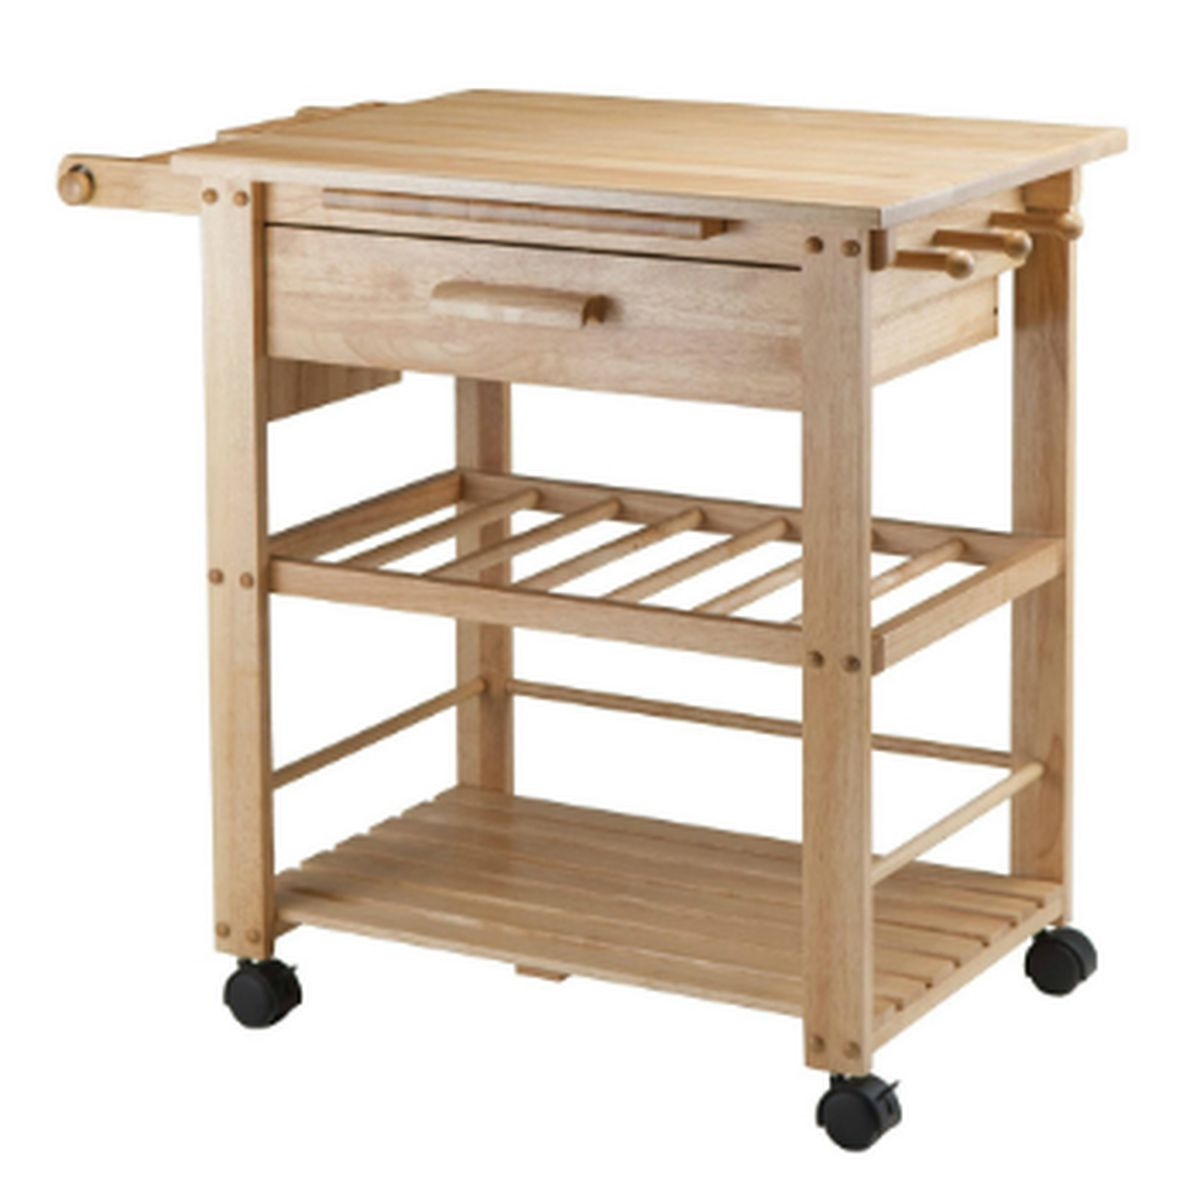 Roots Rack Natural Industrial Kitchen Cart Crosley: 10 Ikea Essentials And Their Best Alternatives